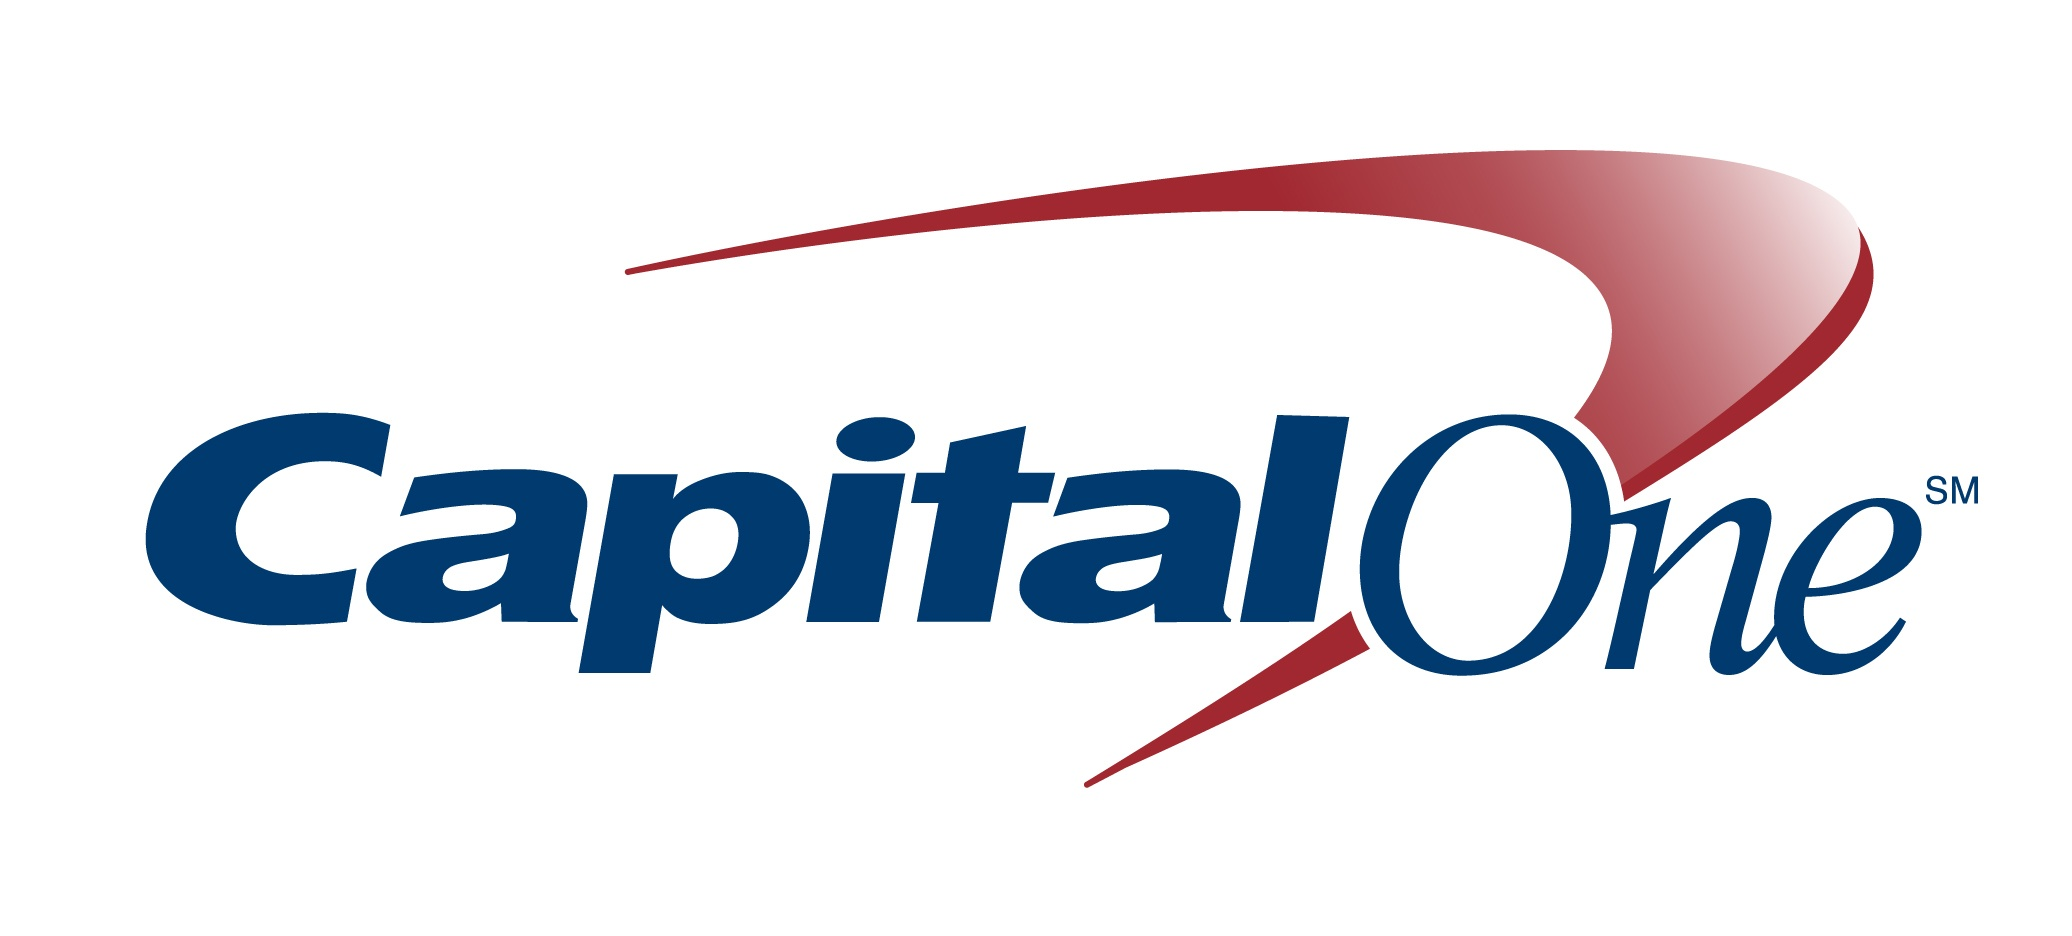 Kohls and capital one announce extended contract for private kohls and capital one announce extended contract for private label credit card business wire biocorpaavc